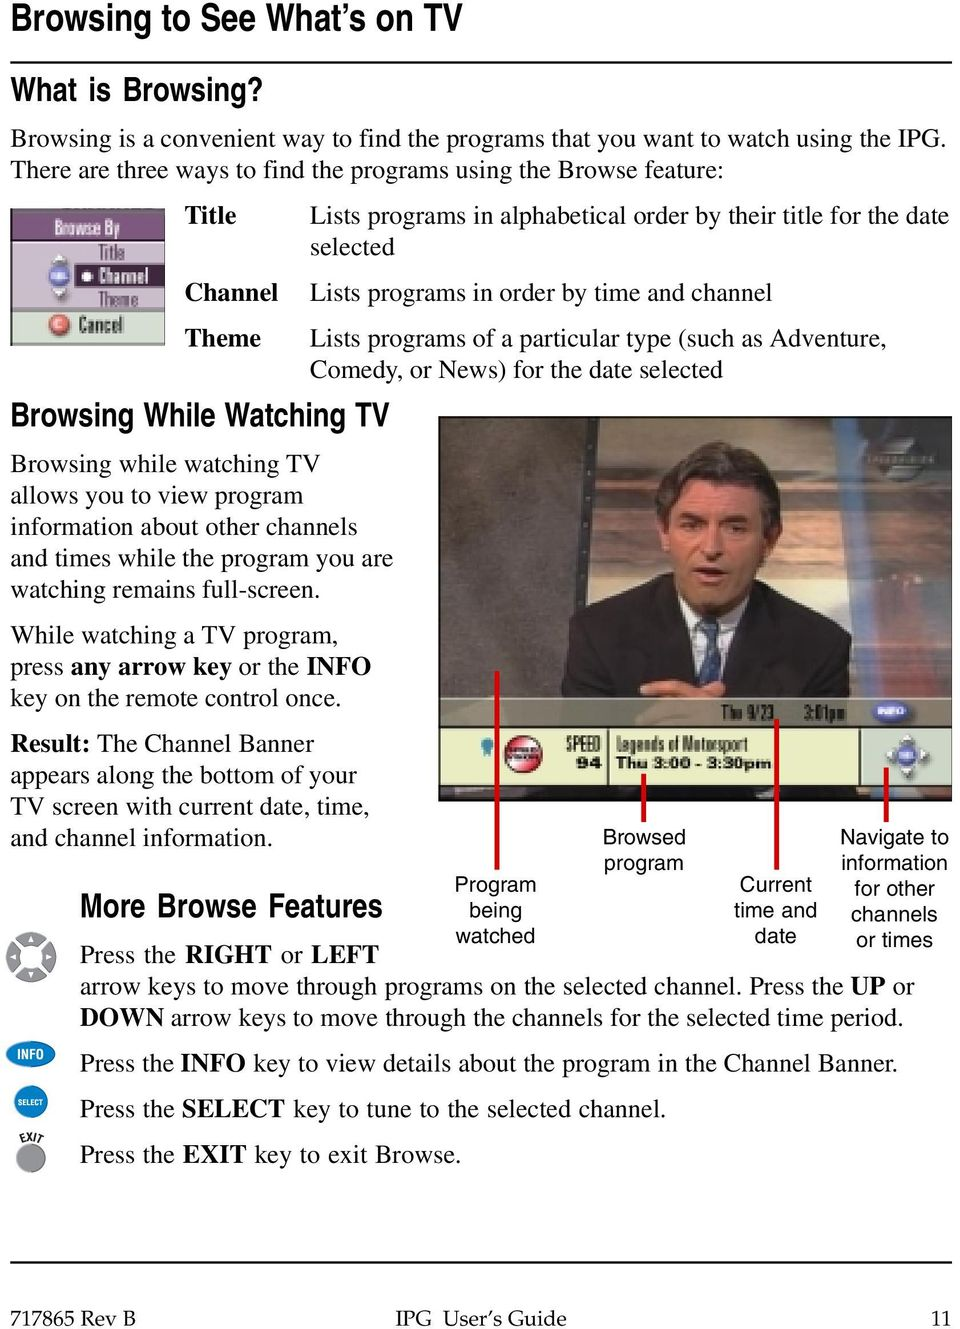 channels and times while the program you are watching remains full-screen. While watching a TV program, press any arrow key or the INFO key on the remote control once.